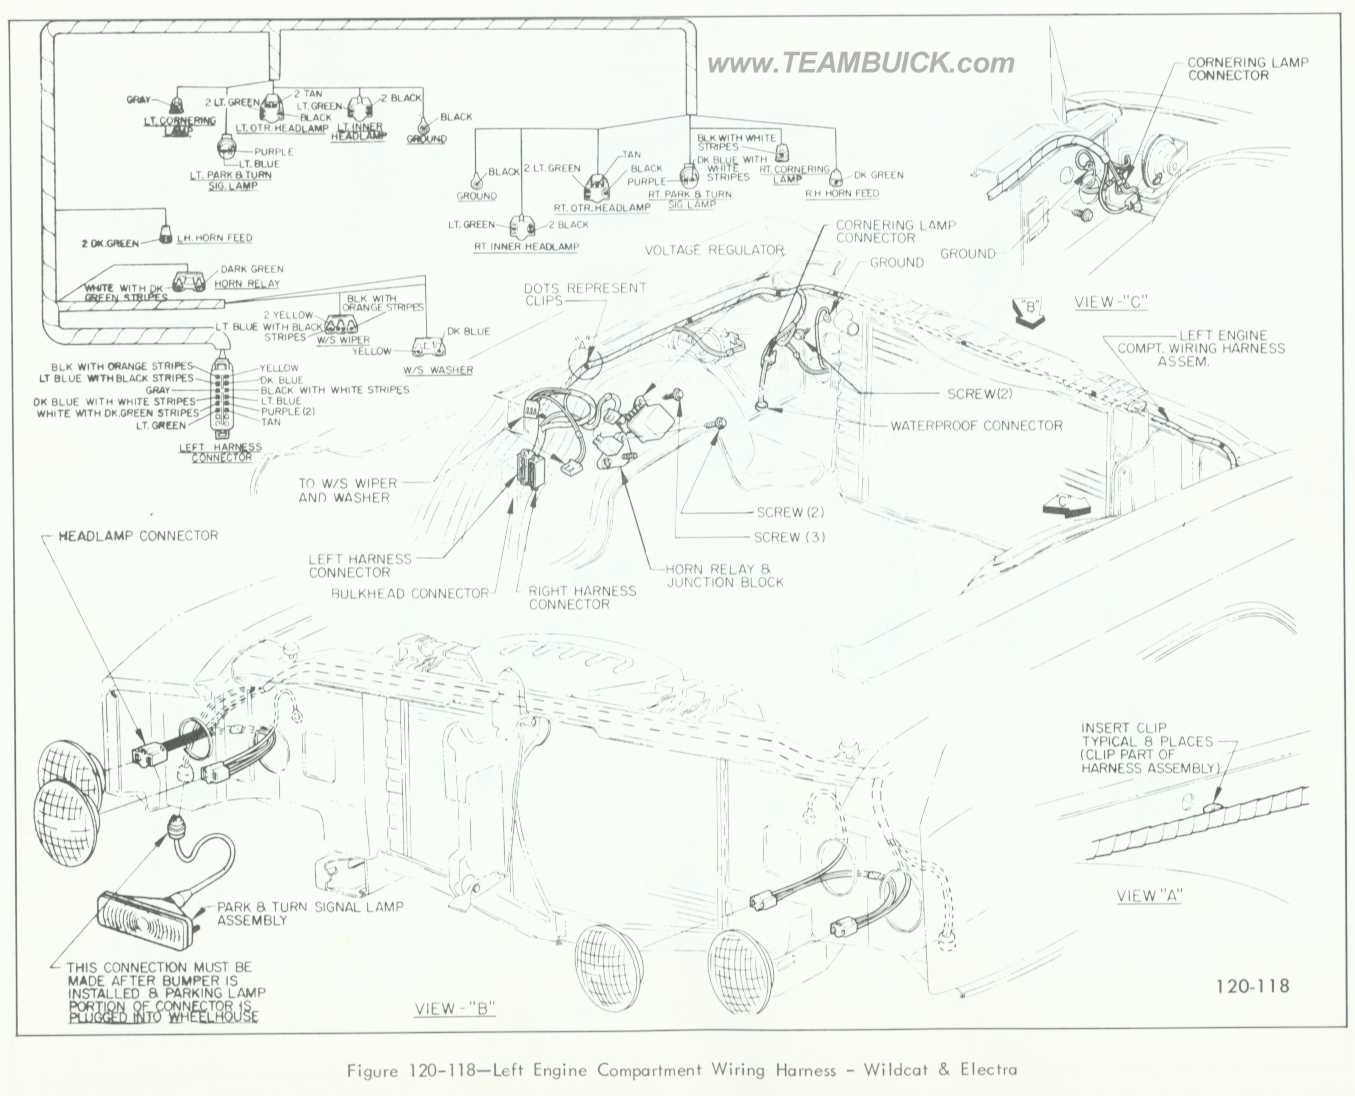 1966 buick wildcat wiring diagram corvette headlight and electra left engine compartment